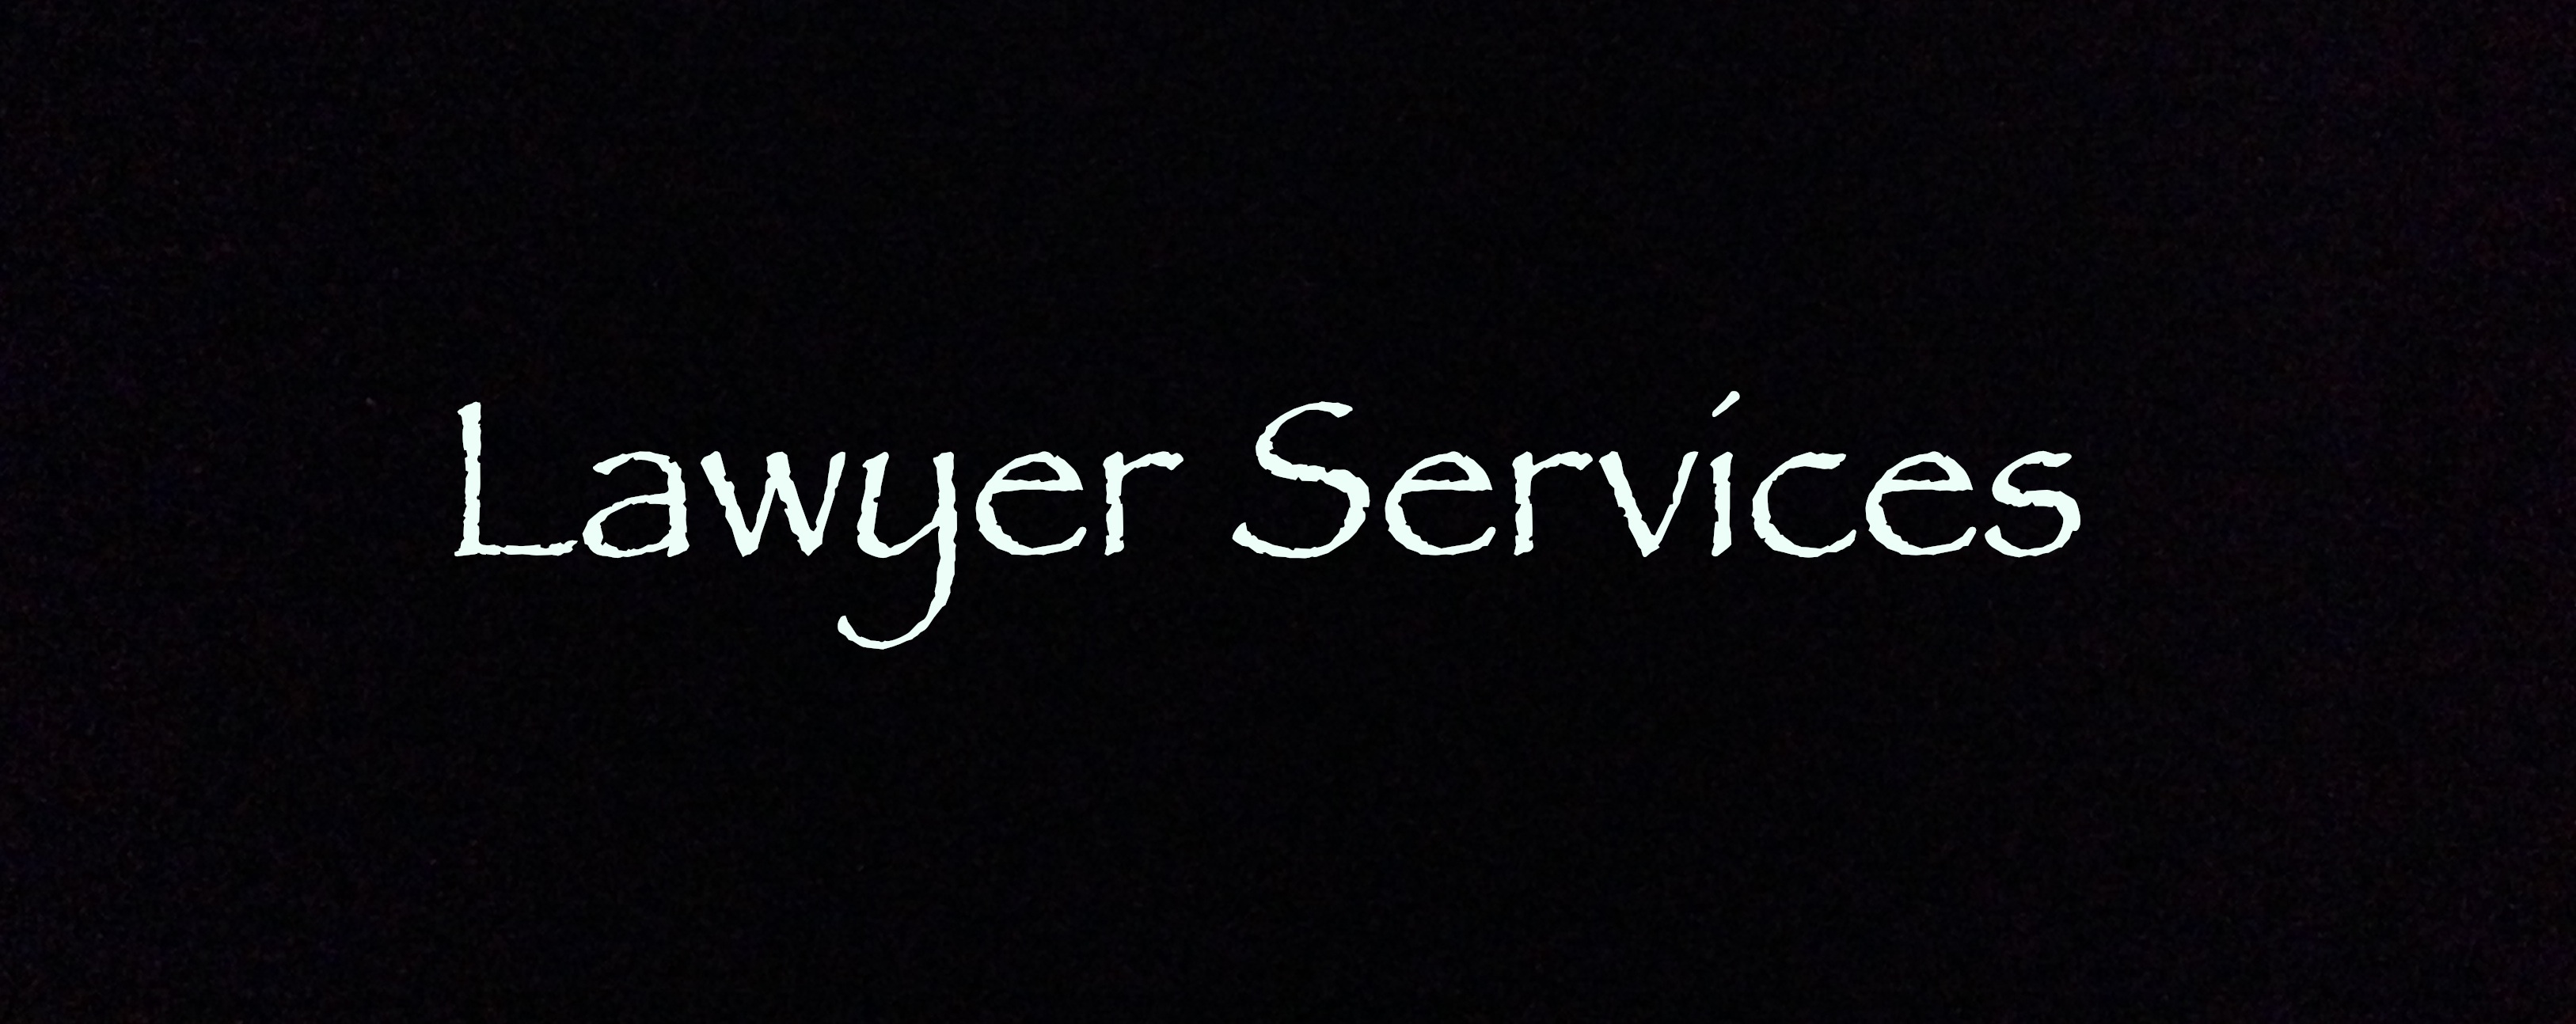 click to move to Legal Services page